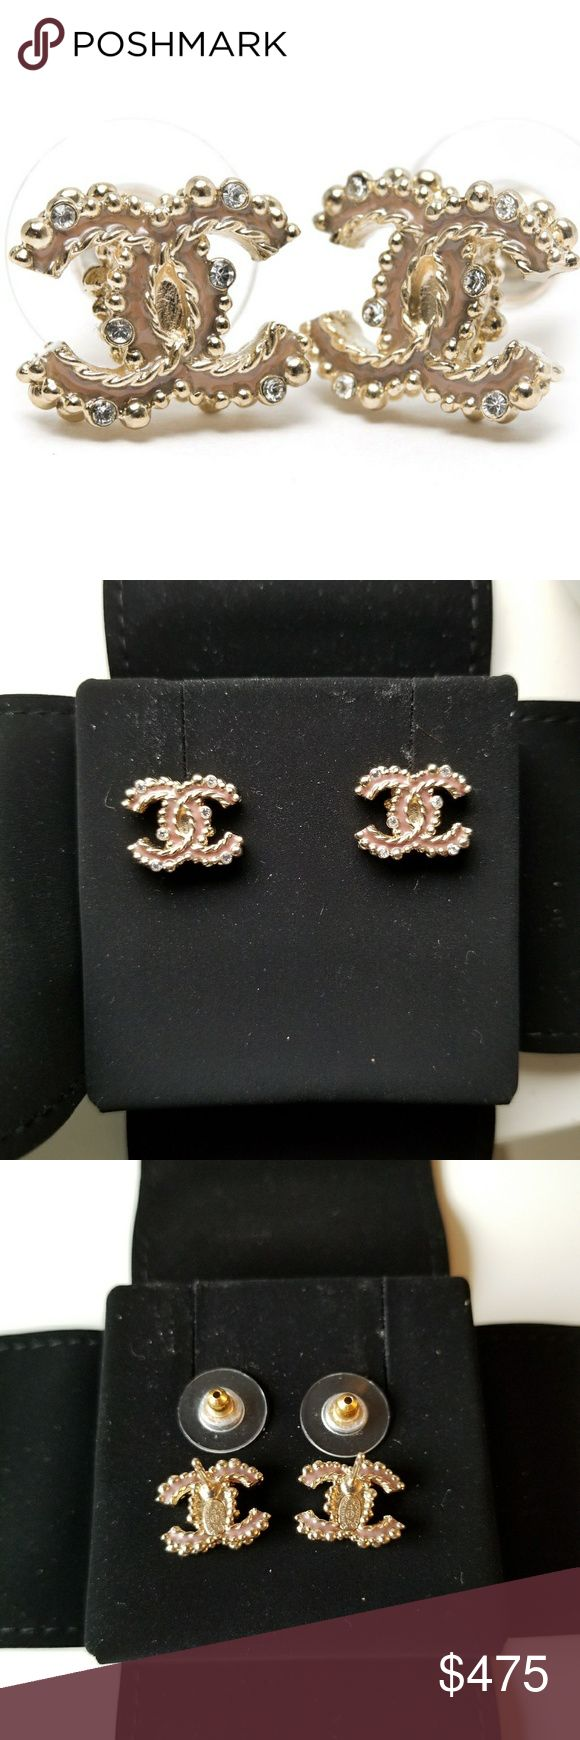 Chanel A97576 Beige Pink CC Stud Earrings Brand new! Purchased recently in May. Beautiful beige color that has a tint of pink. About the size of a dime. Comes with box, flower, and receipt. 🅿️🅿️ ready for cheaper price. CHANEL Jewelry Earrings